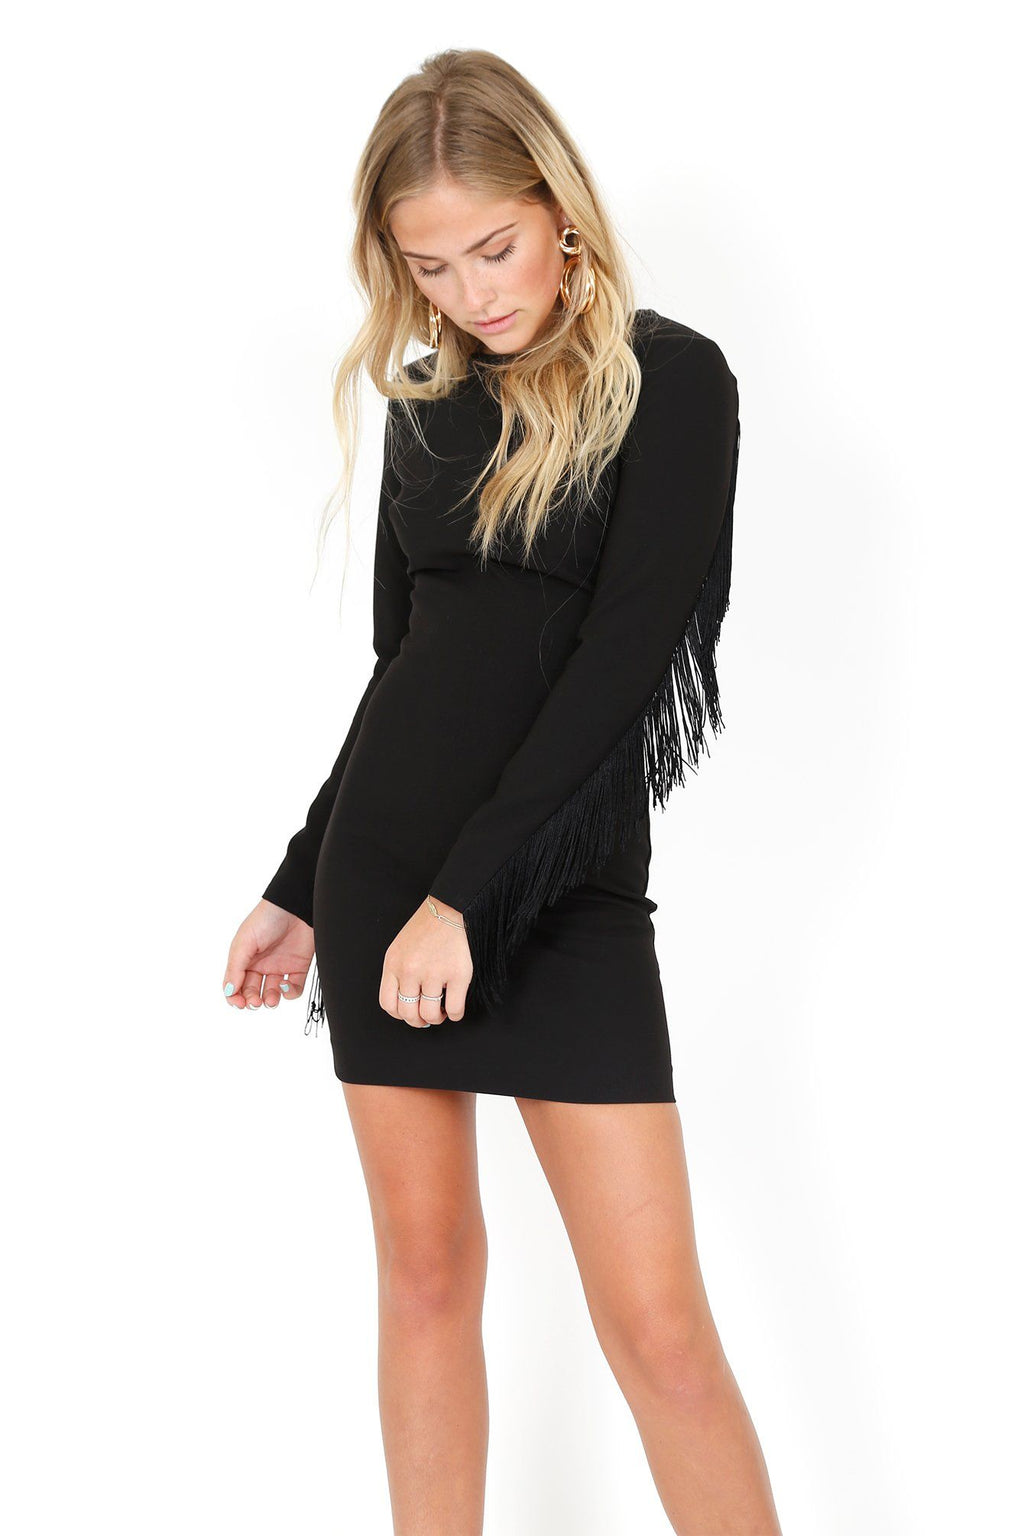 LIKELY | Quinley Dress - Black